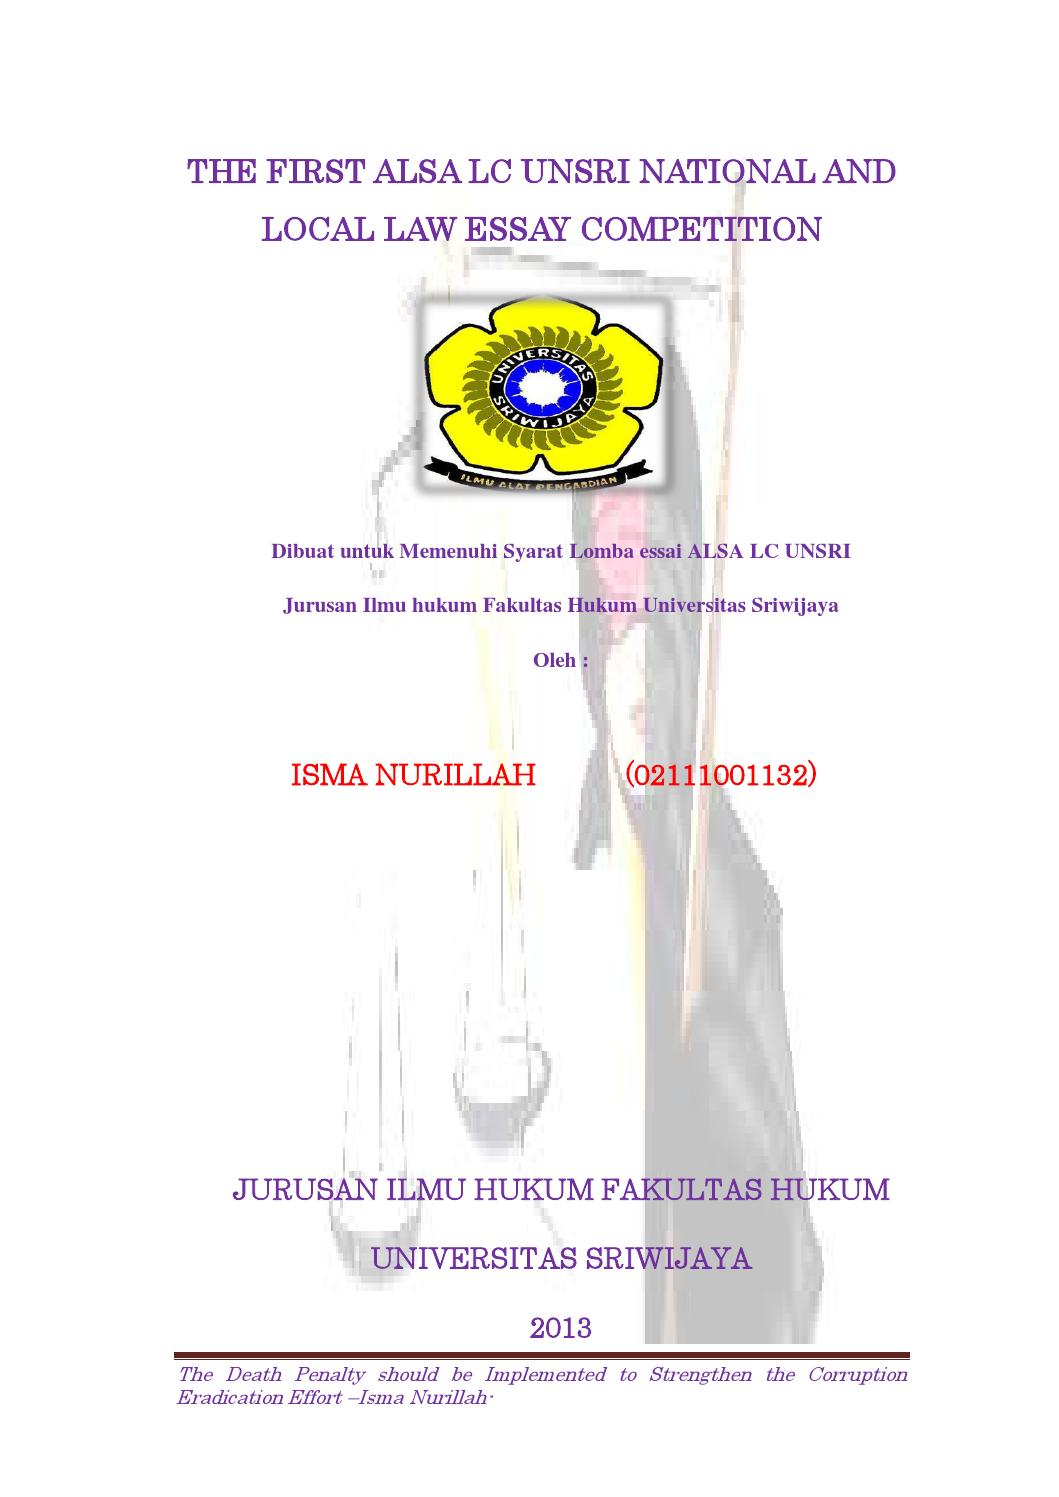 1st winner alsa local law essay competition 2013 by alsa lc unsri 1st winner alsa local law essay competition 2013 by alsa lc unsri